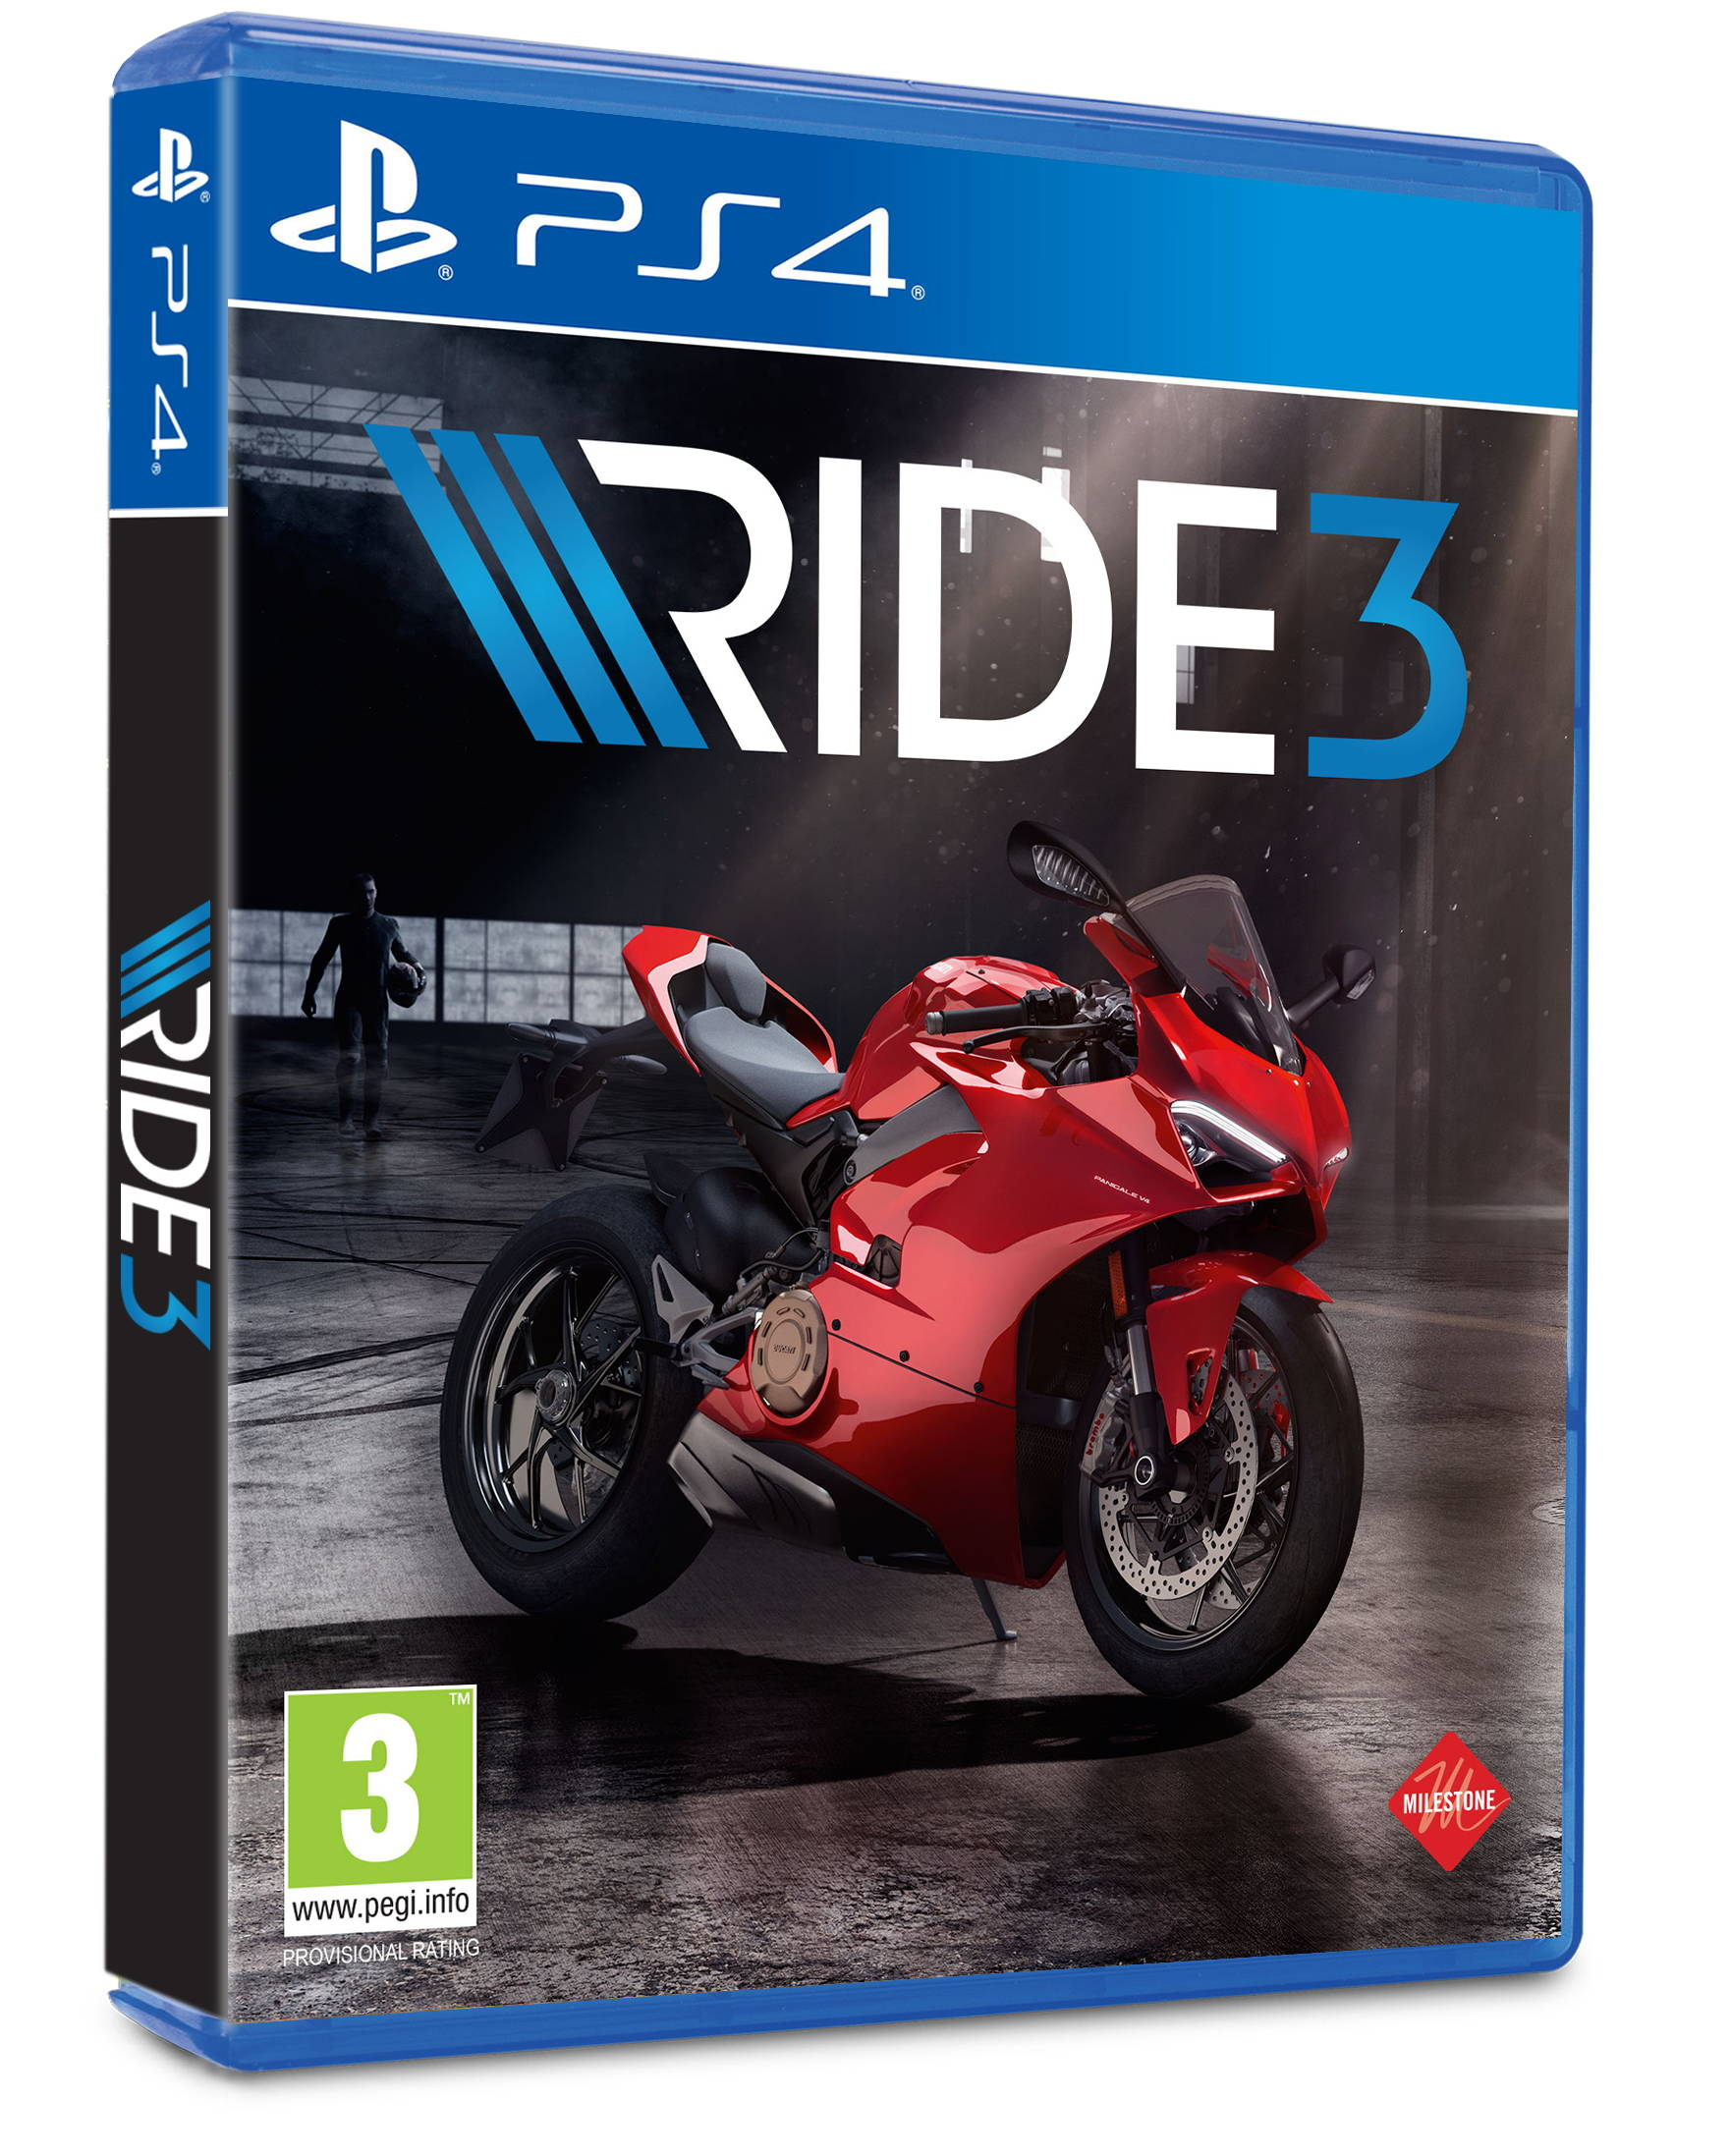 ride3_images_0002